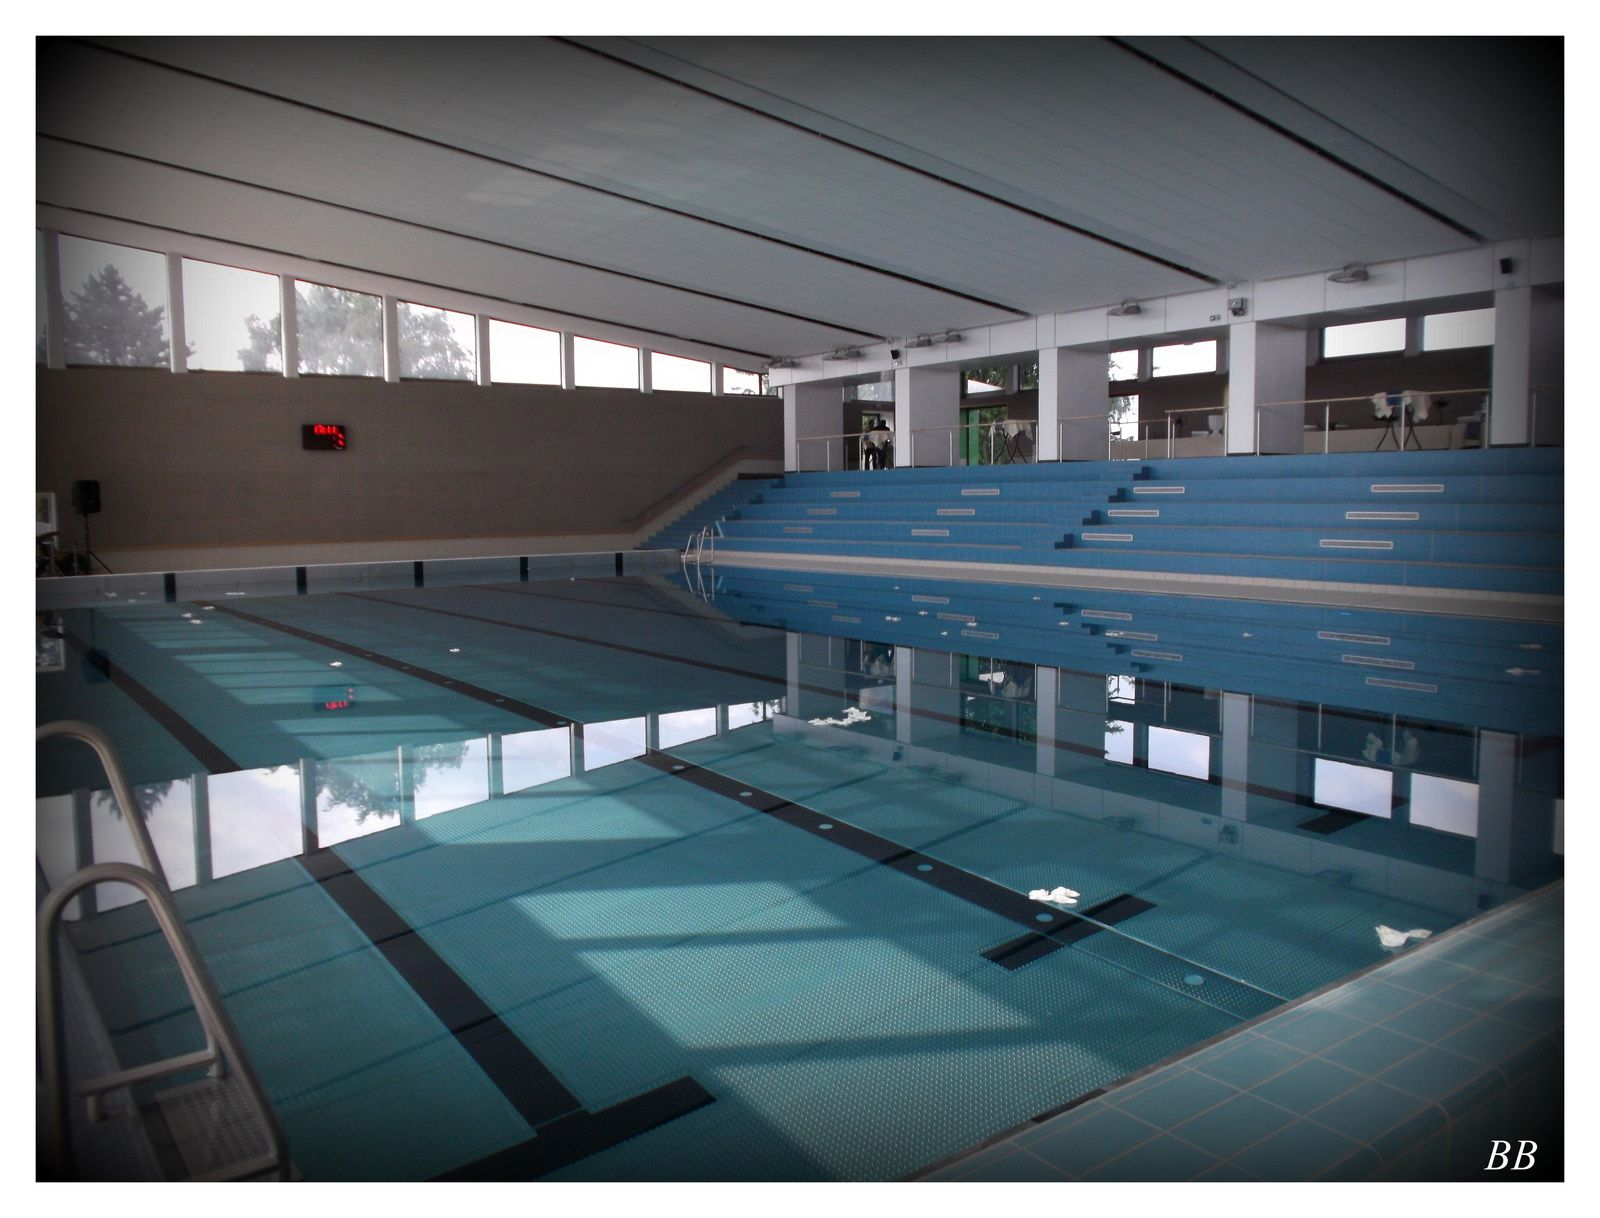 Piscine belletanche metz tarif cycle natation l cole for Tarif piscine